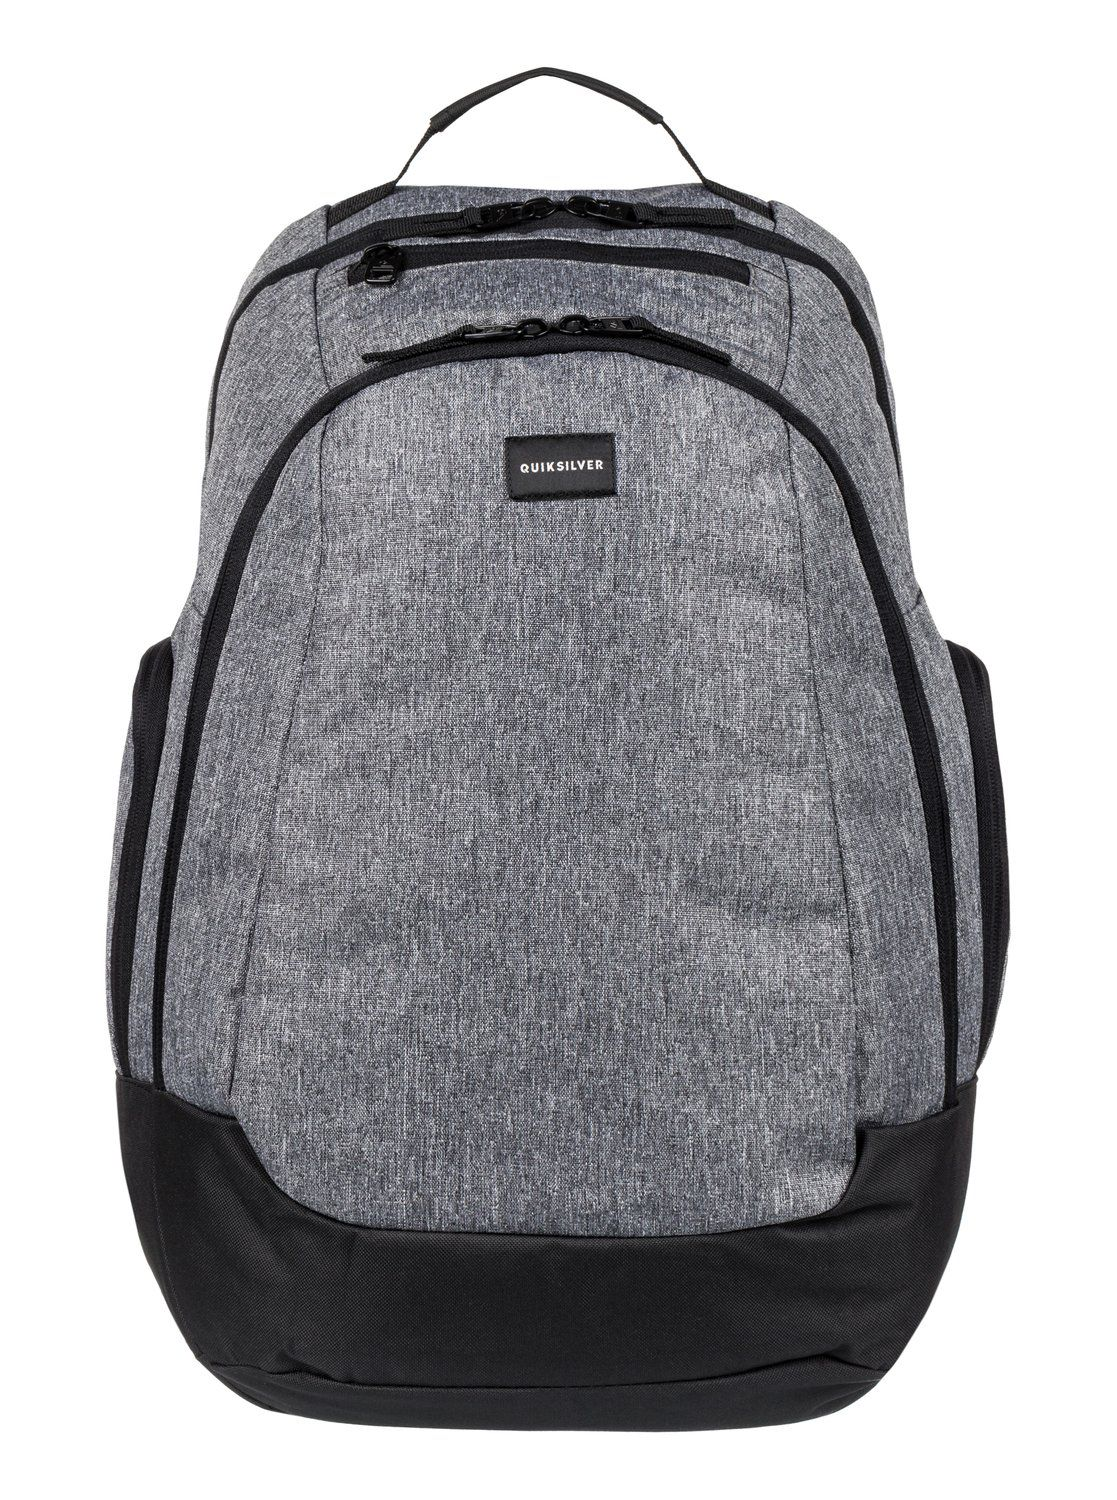 Quiksilver 1969 Special 28L Backpack, Light Grey